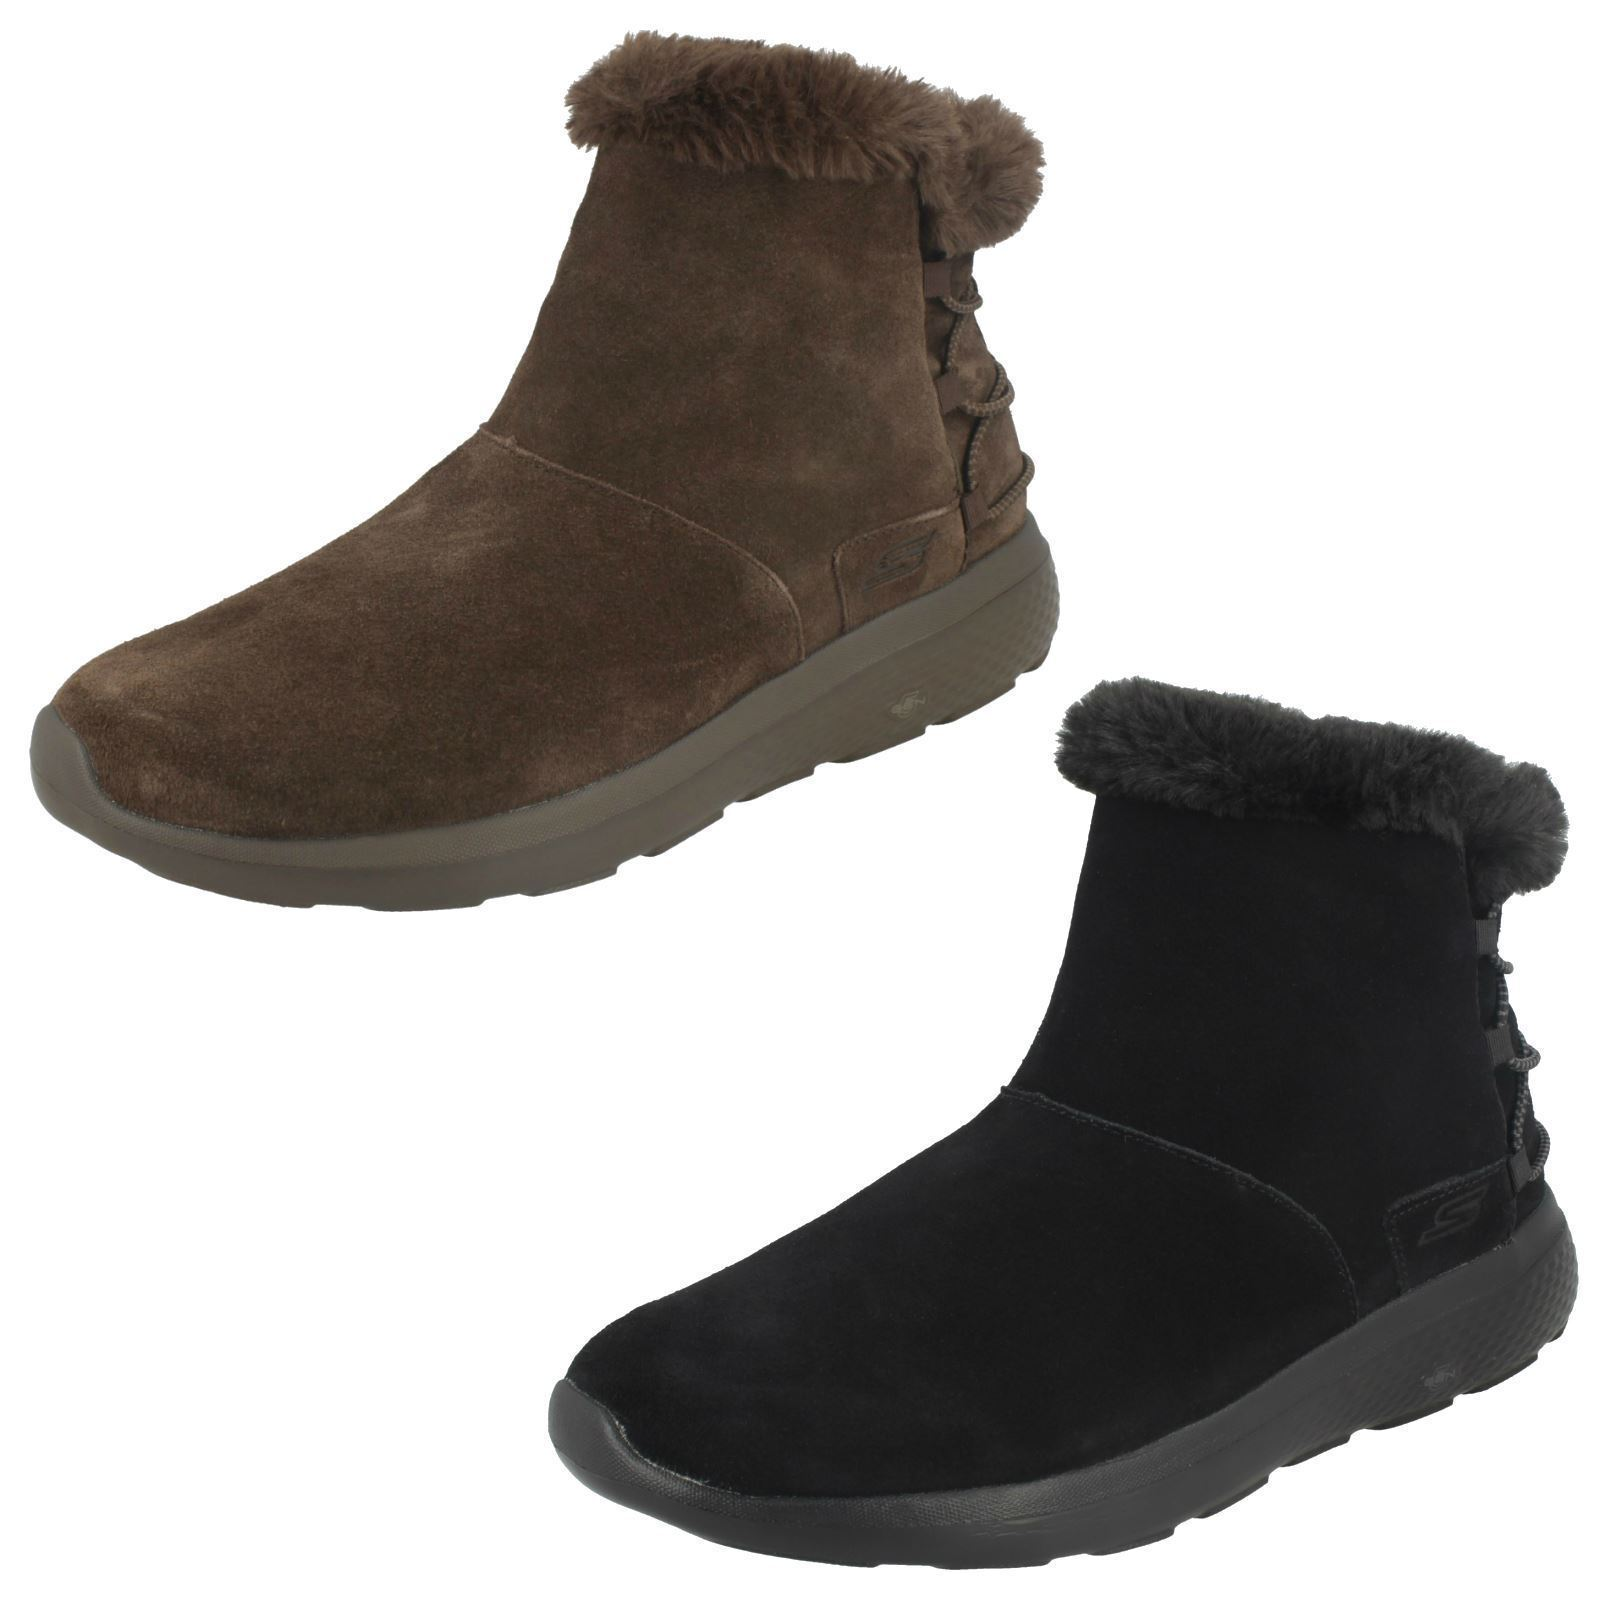 Ladies Skechers 14615 Hibernate Casual Suede Ankle Boots